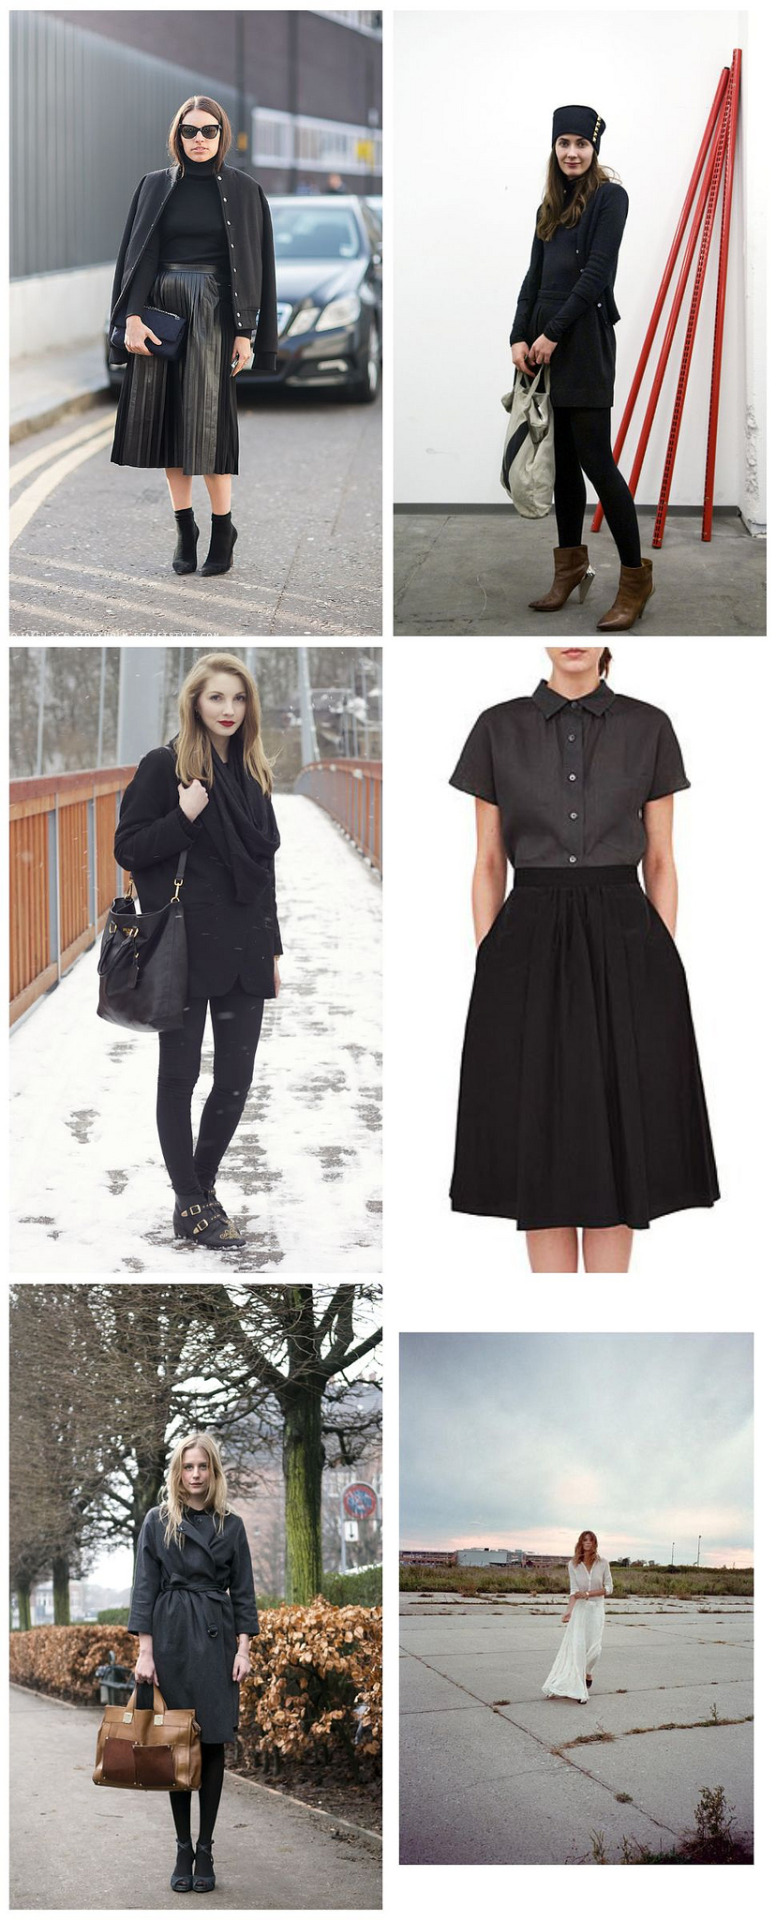 Black on Black   Some of my favorite looks of the week in mostly monochrome black.   Stockholm Street Style | The Locals | Pavlina Jagrova | Margaret Howell | The Locals | Daria Werbowy for Maiyet by Cass Bird